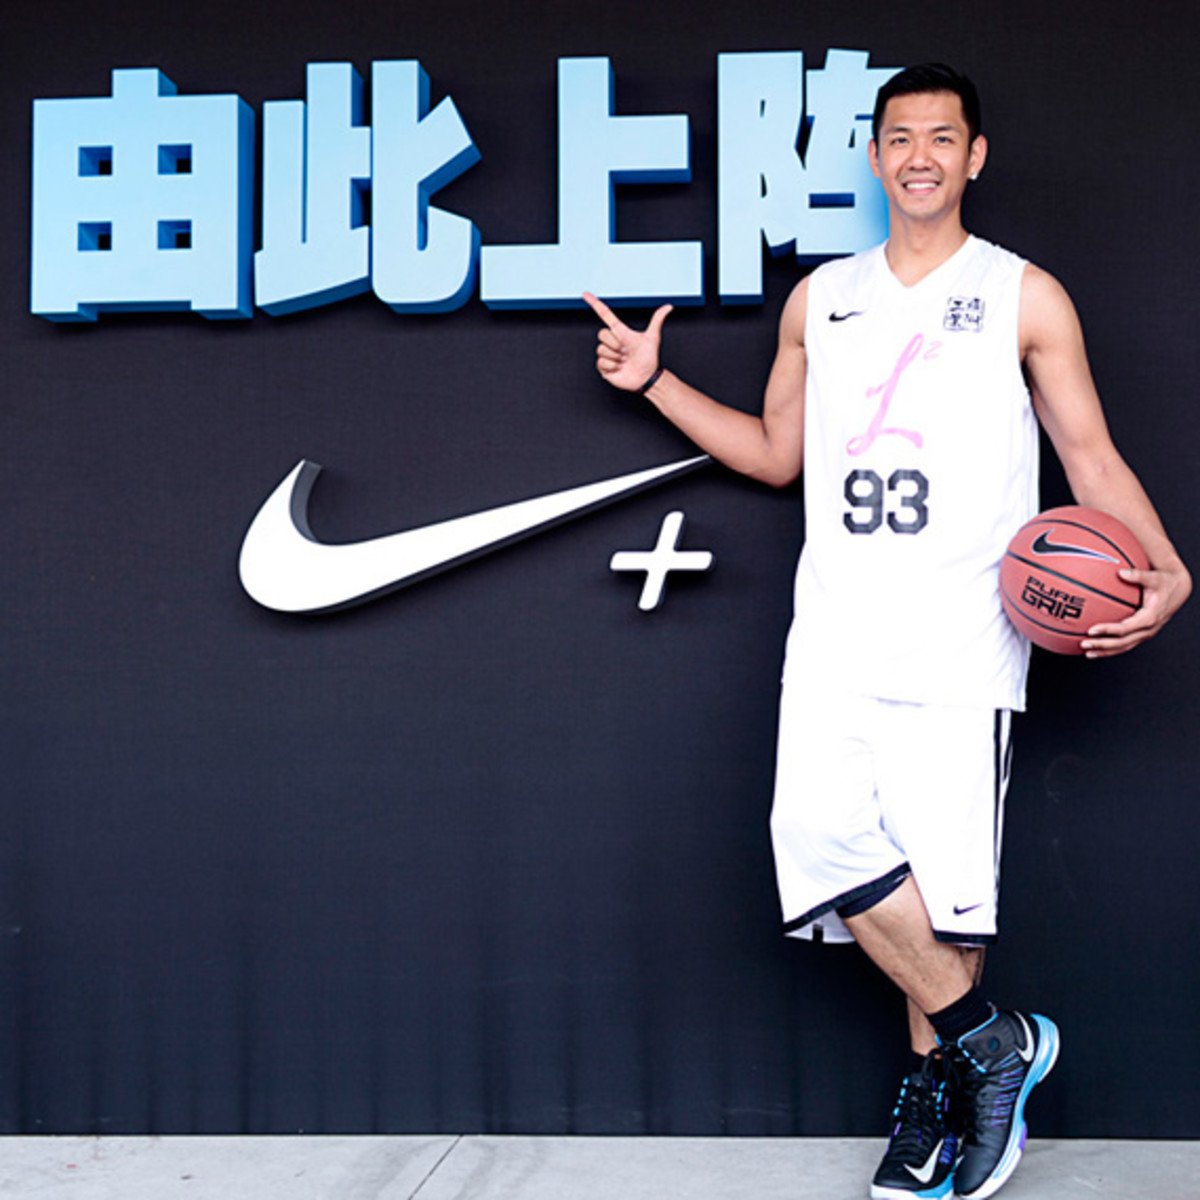 nike-plus-demo-day-shanghai-china-10